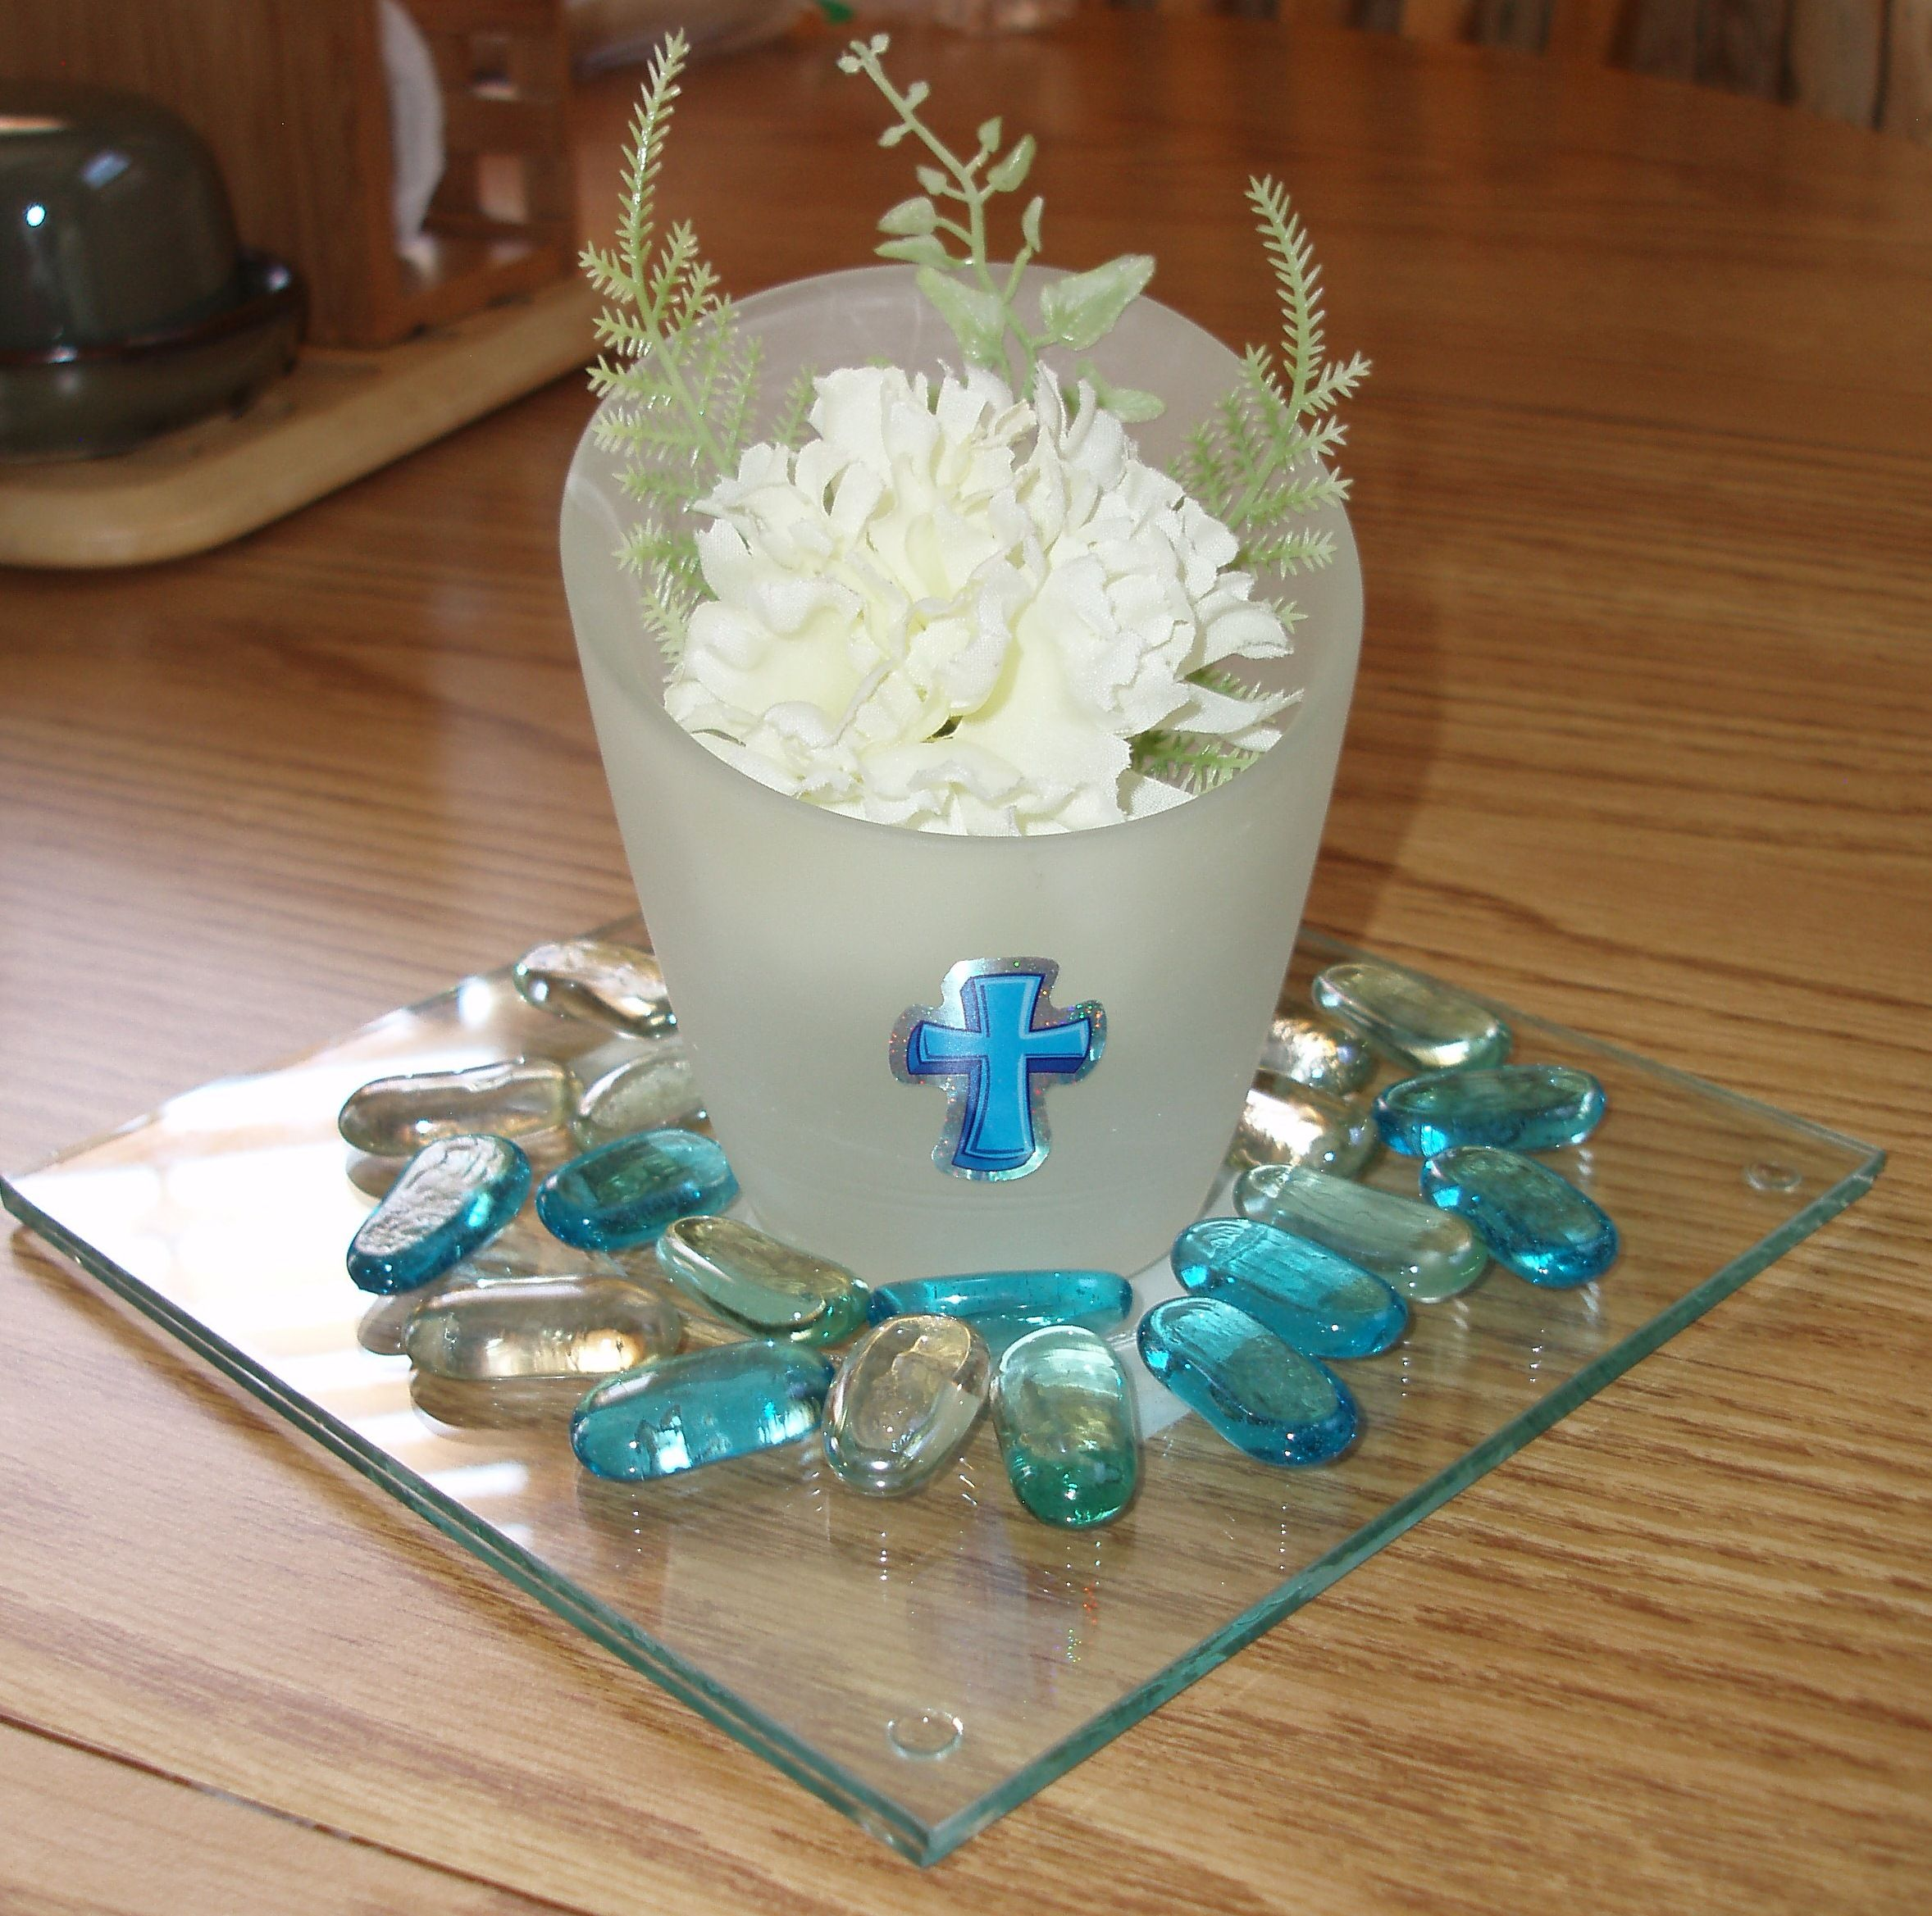 Communion party centerpieces all from dollar tree